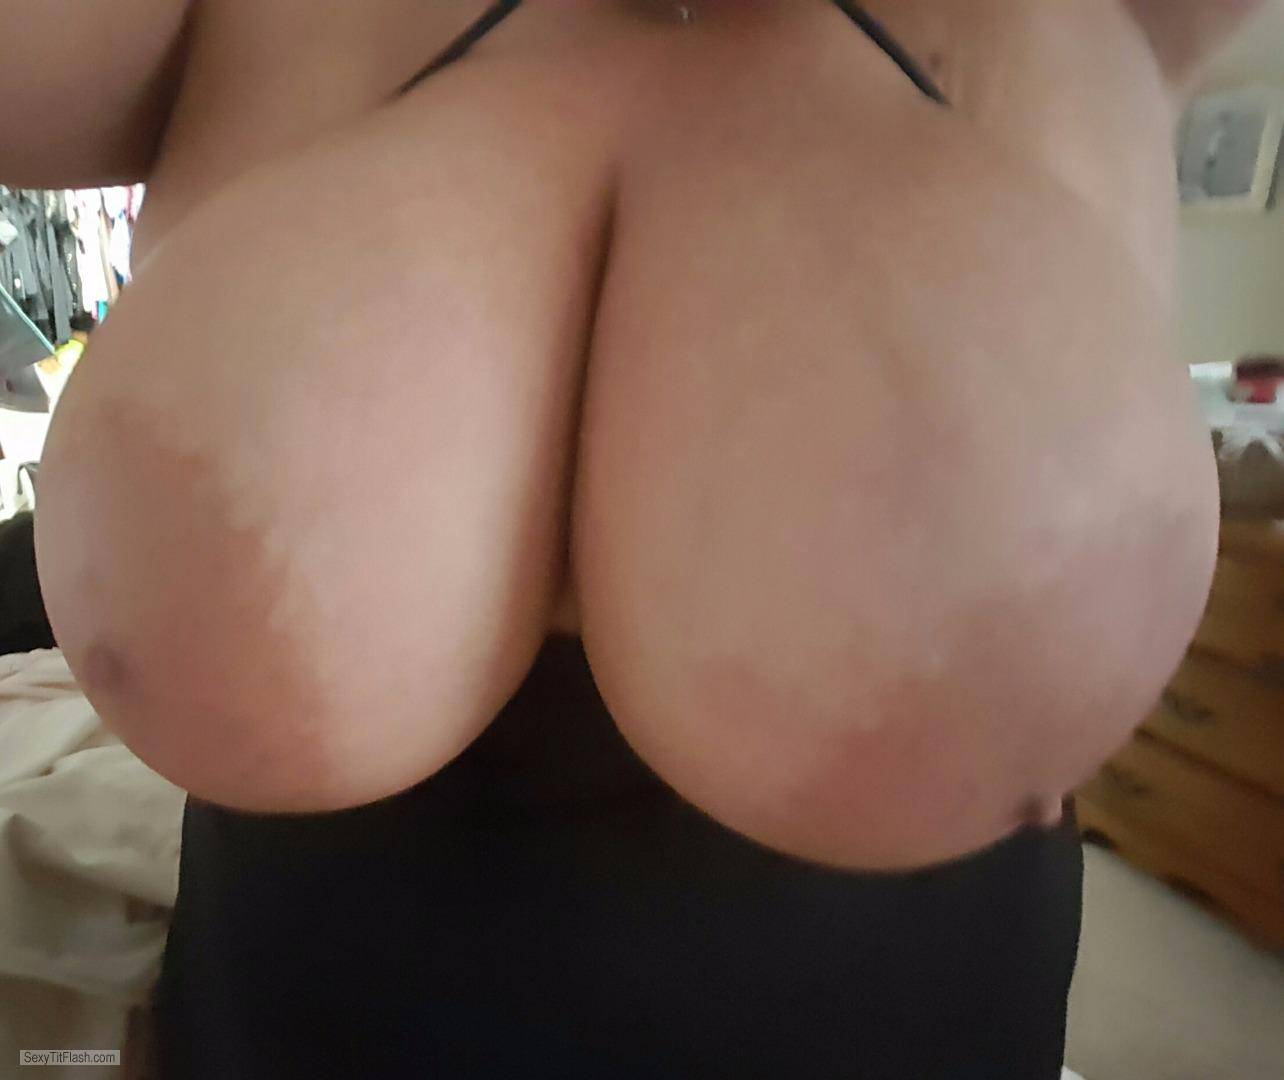 Tit Flash: My Very Big Tits - Nipplelicious from United States